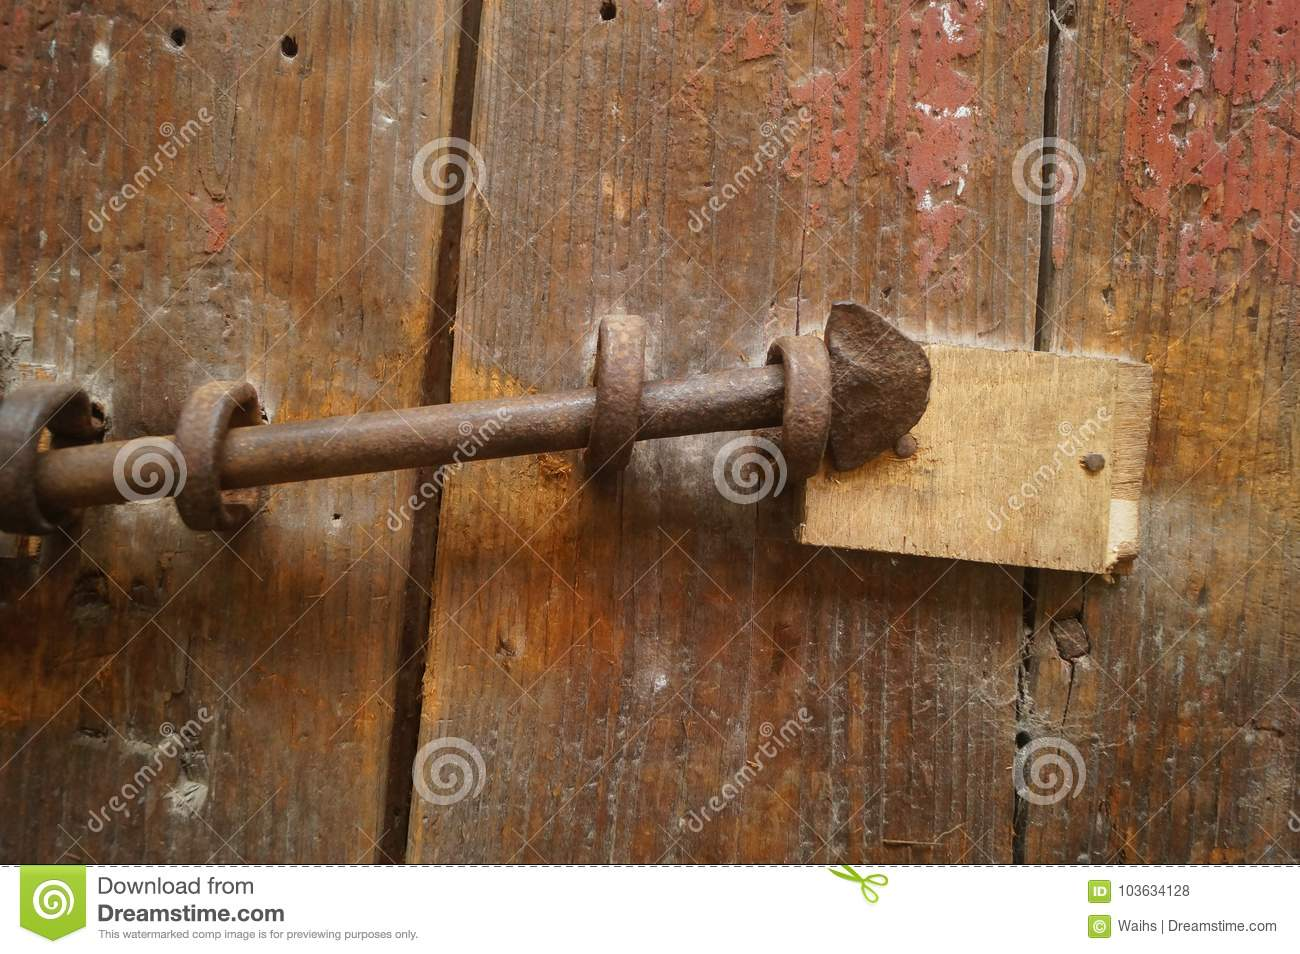 wooden doors and locks in an old house stock photo image of locks